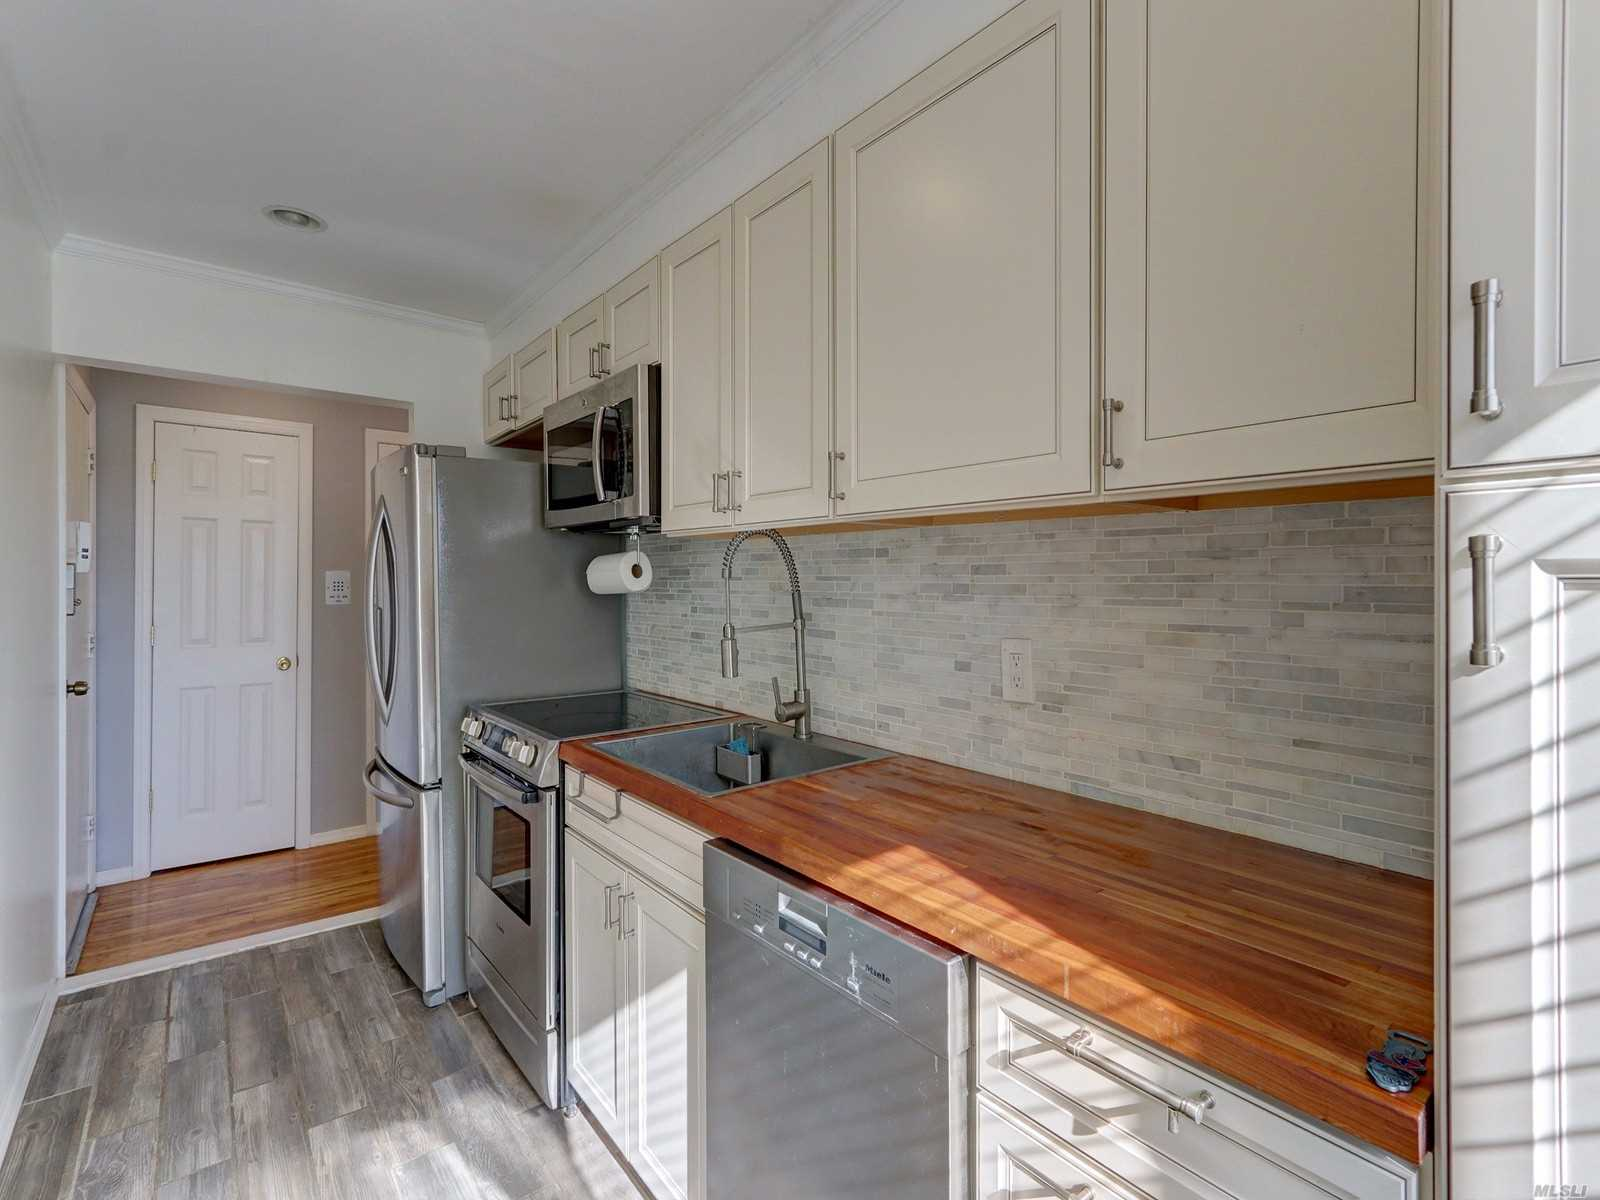 2417 Union Blvd 11751 - One of Islip Homes for Sale